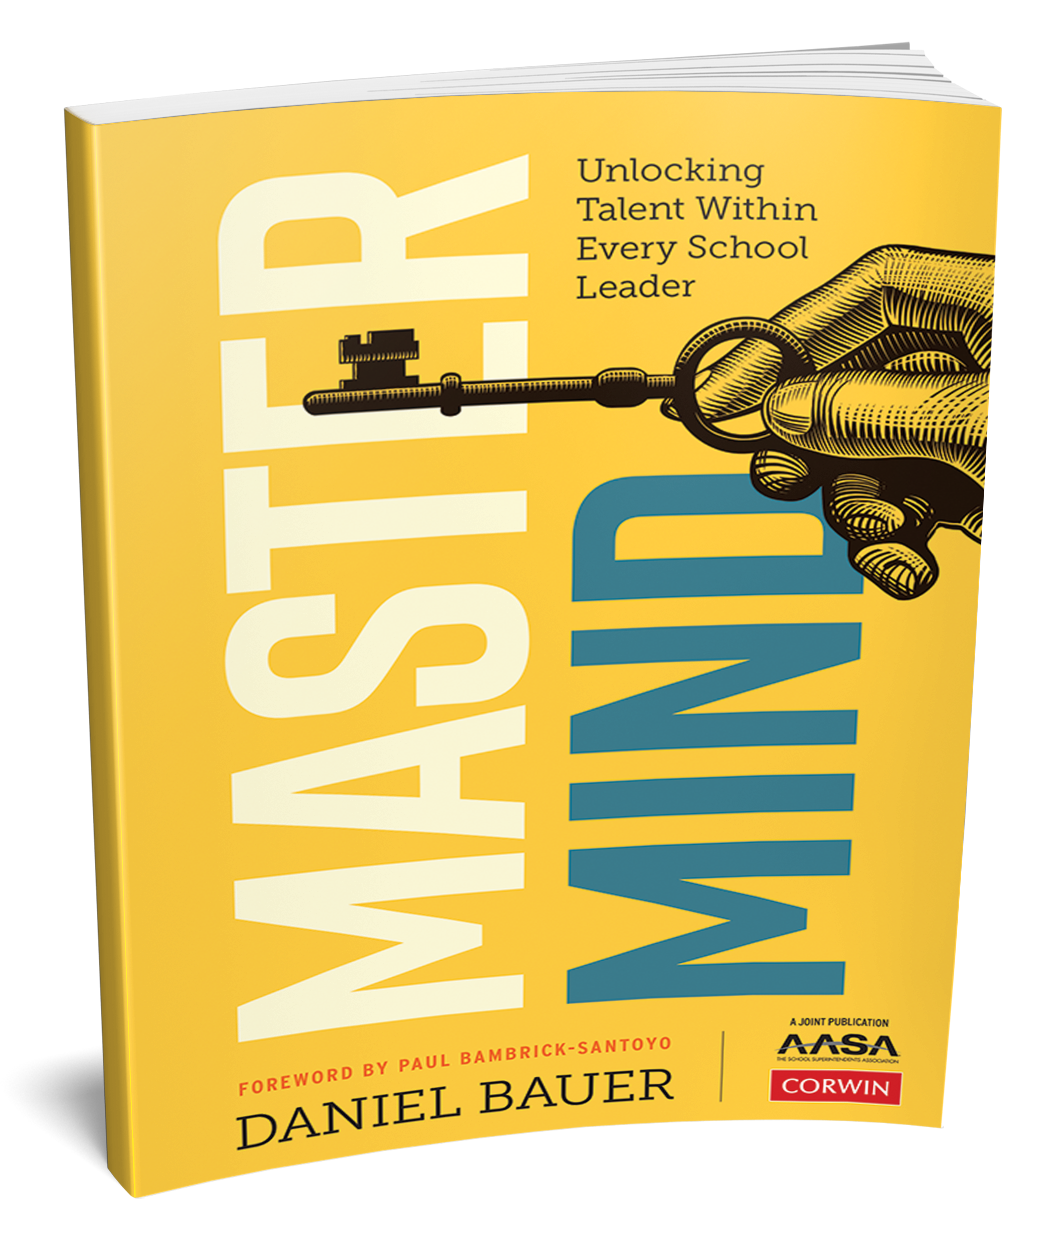 Mastermind Book Club - Join Now